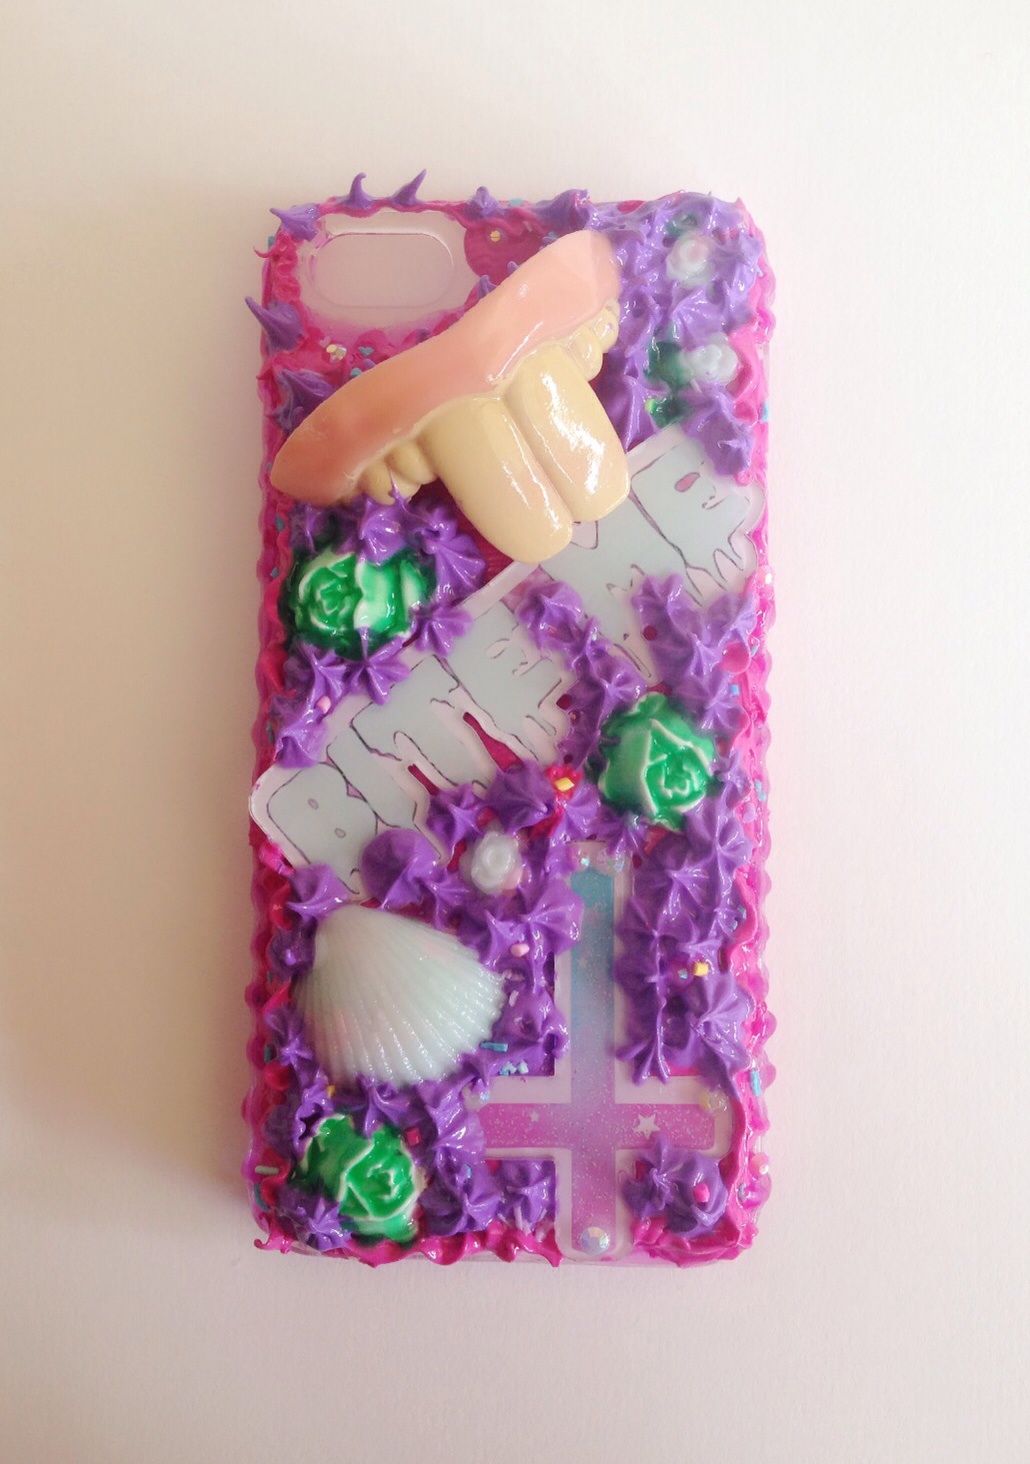 Handmade Decoden Phone Case Custom Iphone Case Fun Teeth Shell Glow